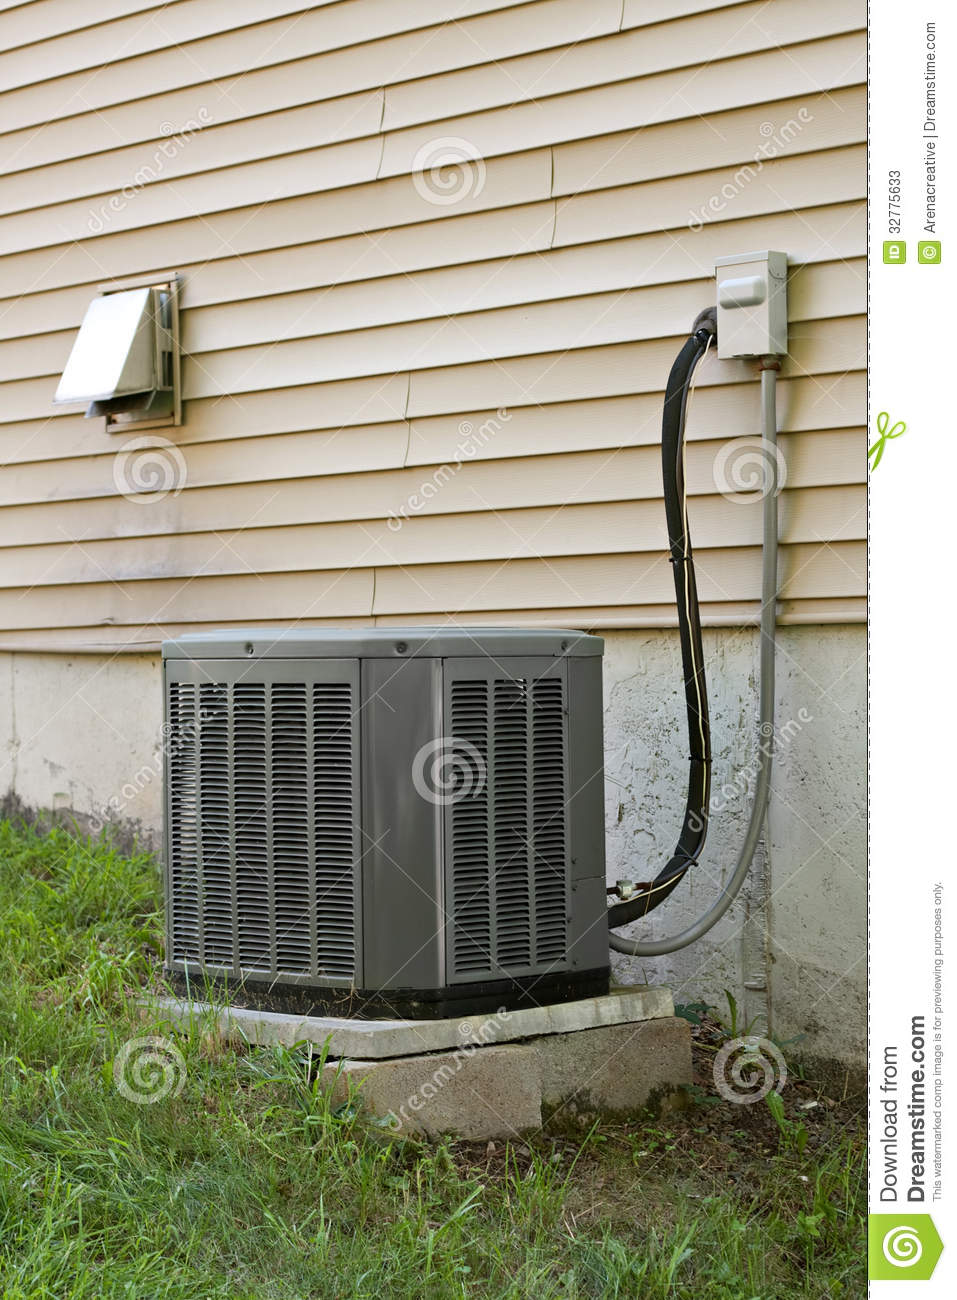 Cooling Units For Homes : Air conditioning units residential